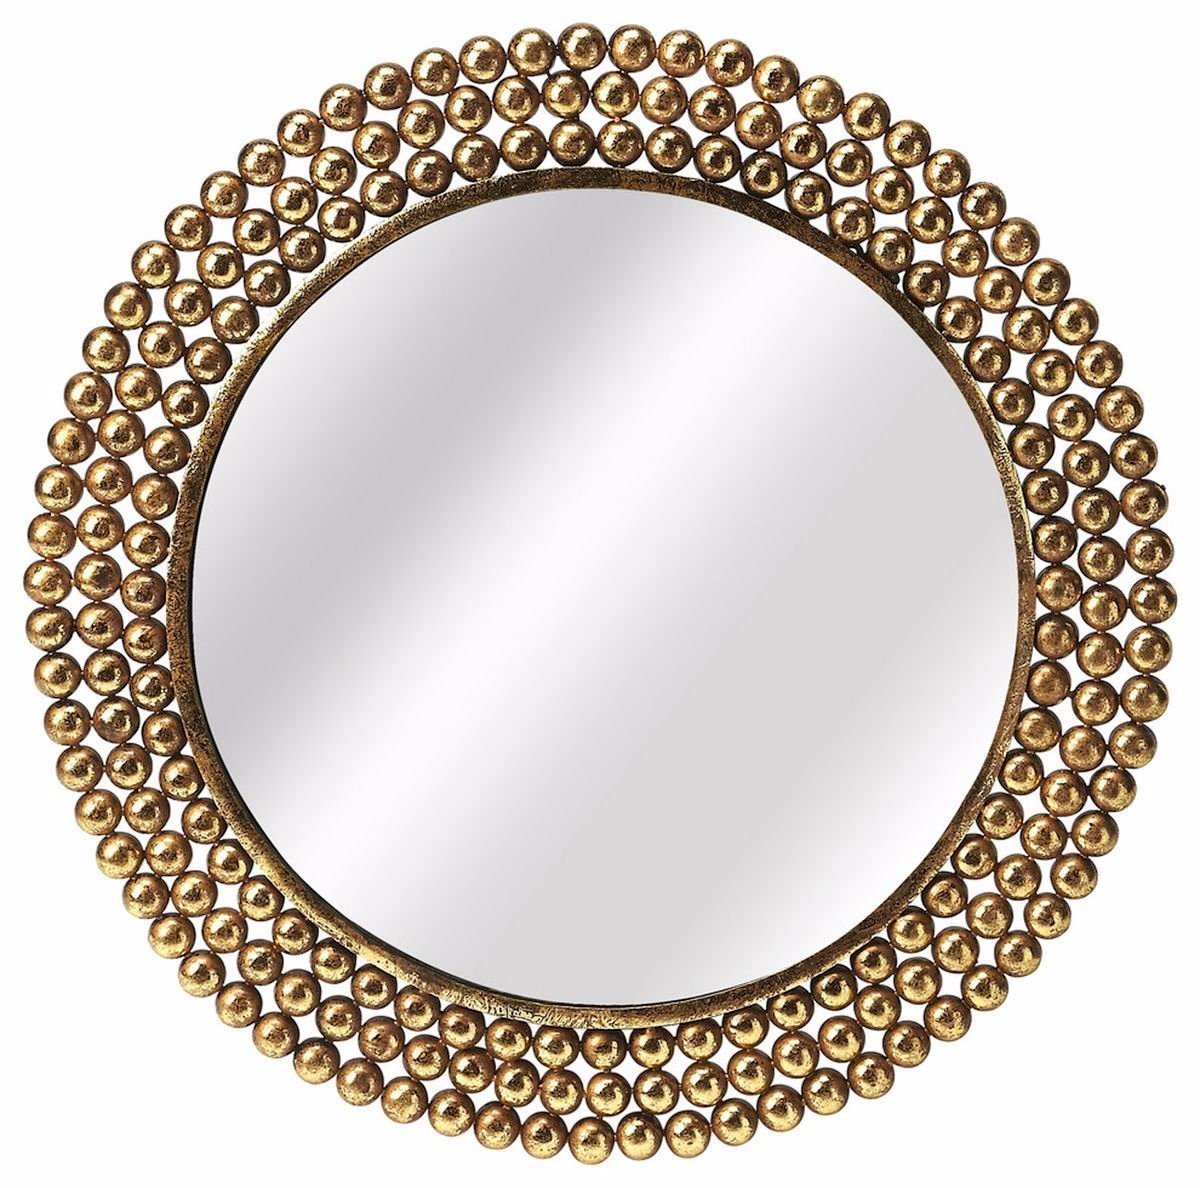 Ambiant Transitional MIRROR Gold